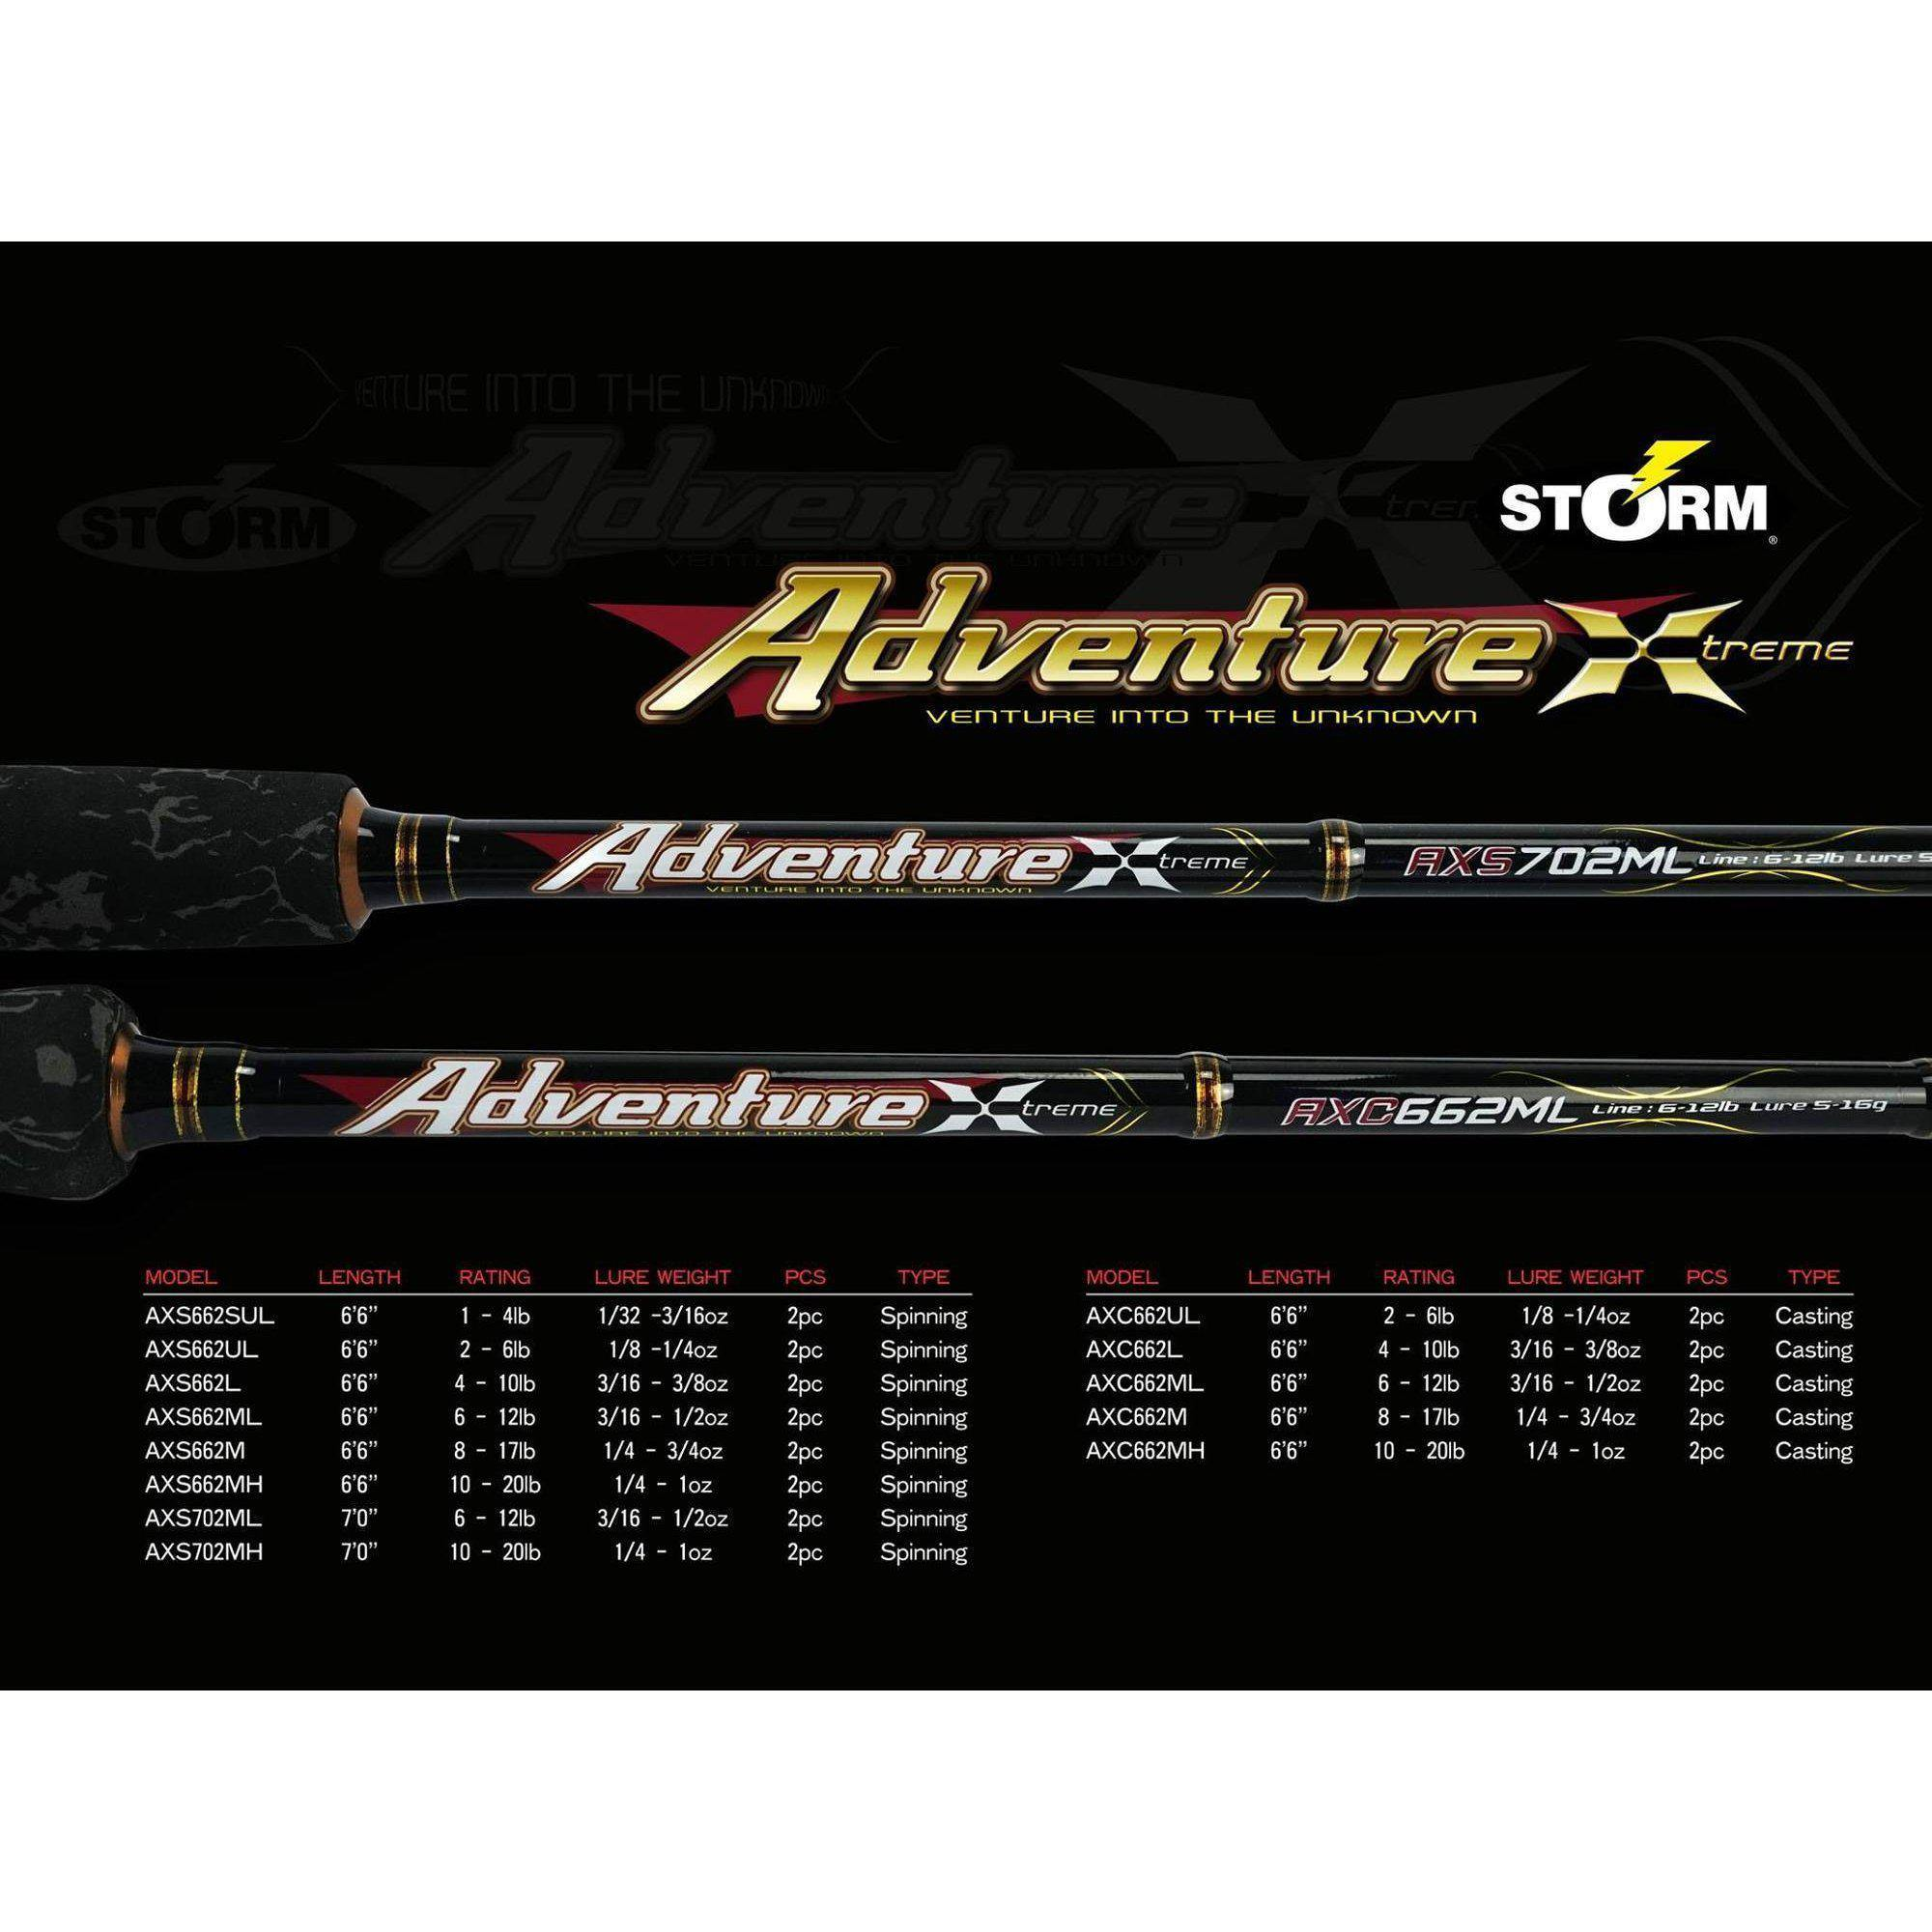 Storm Adventure Xtreme Baitcast - Rods - Baitcaster | Addict Tackle